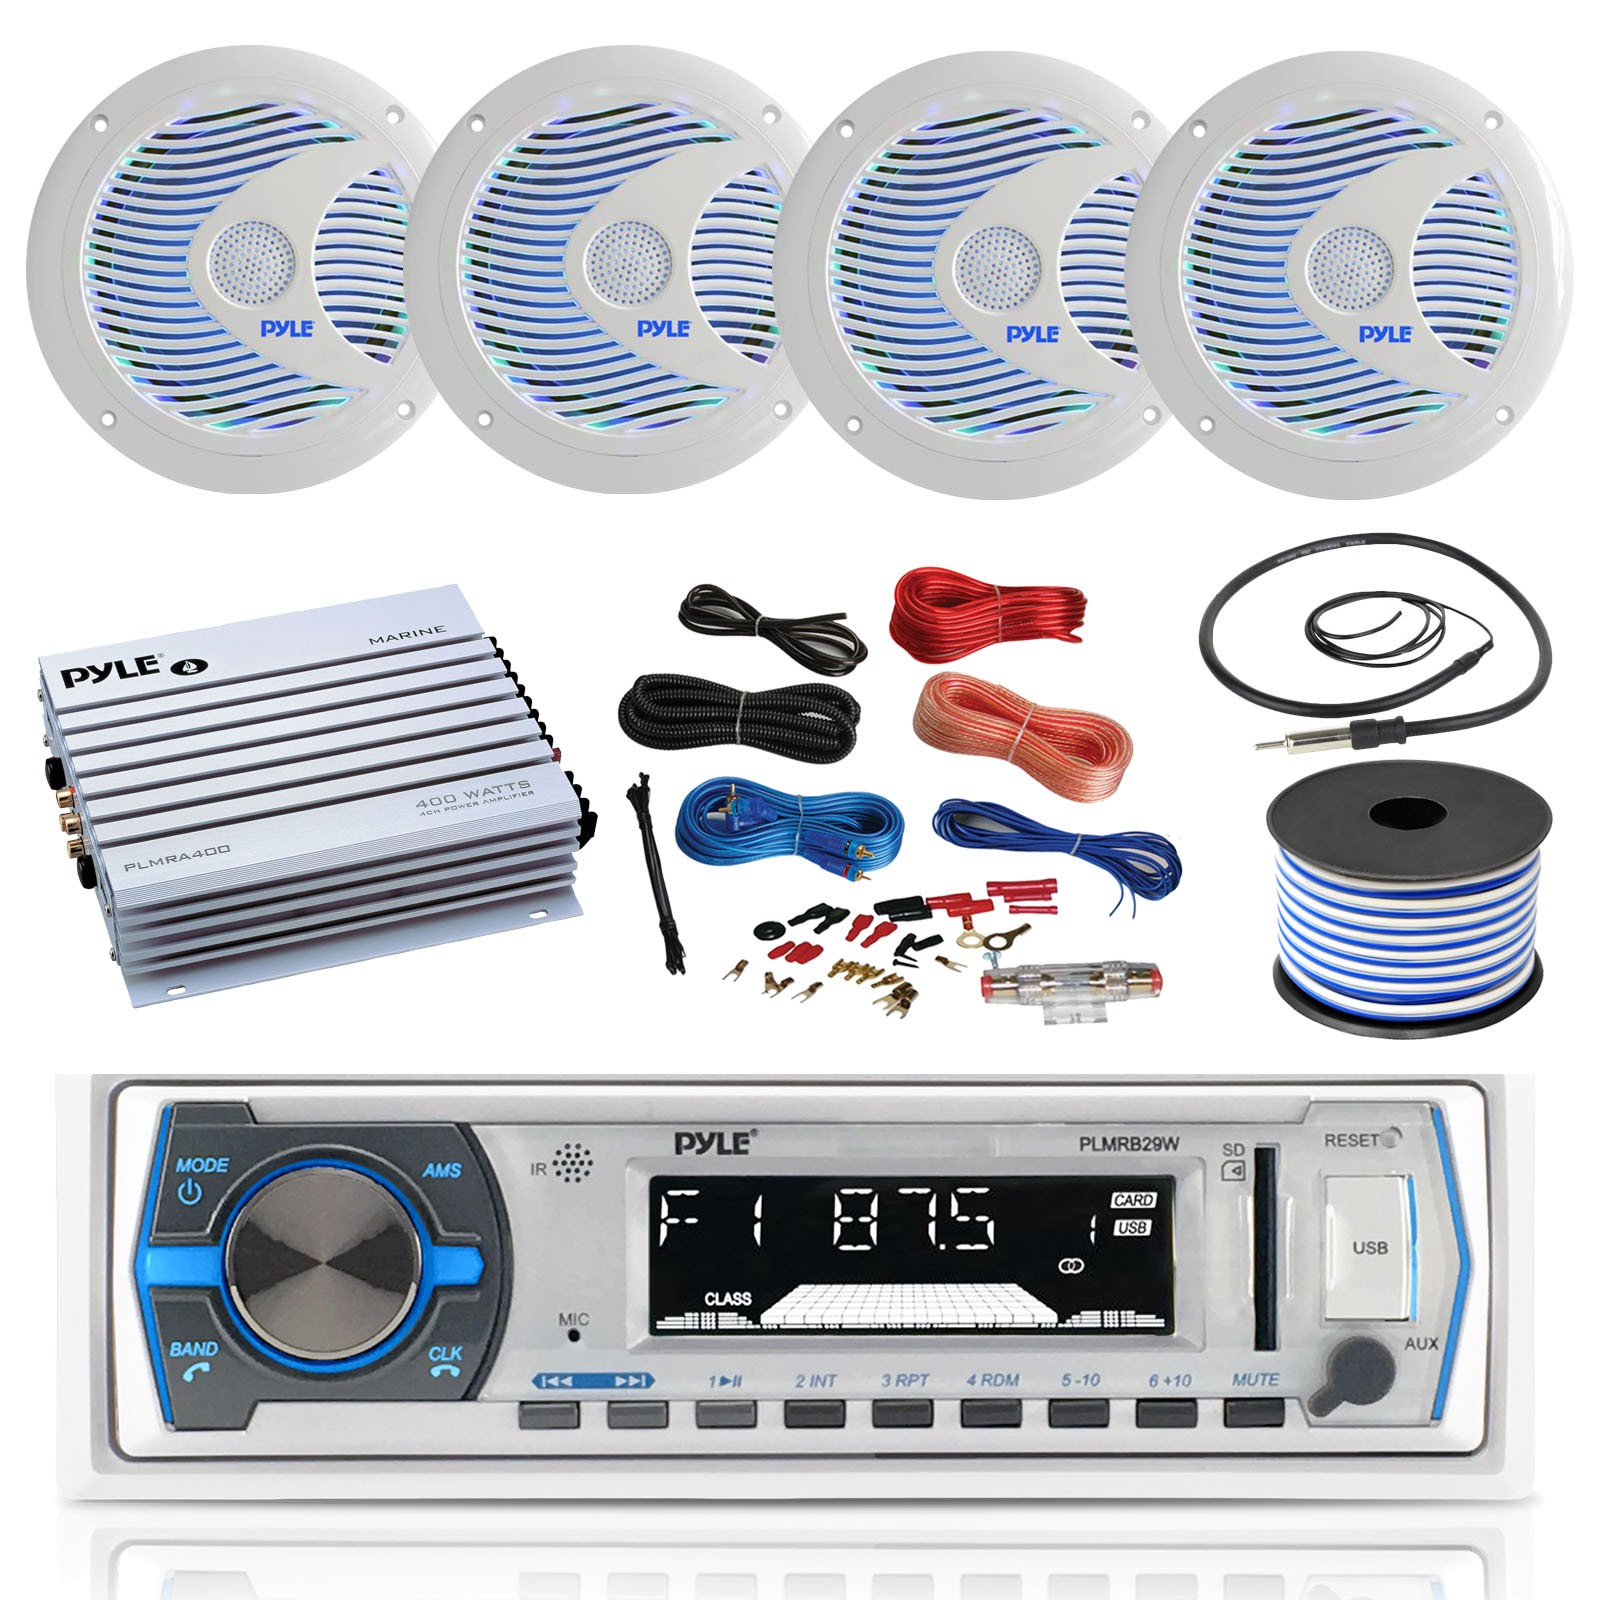 Pyle Hydra Amplifier Wiring 16 25 Bay Boat Pyle Bluetooth Marine Usb Mp3 Stereo Receiver 4 X Pyle 6 5 Waterproof White Speakers W Led Pyle 4 Channel Boat Amplifier Amp Of Pyle Hydra Amplifier Wiring